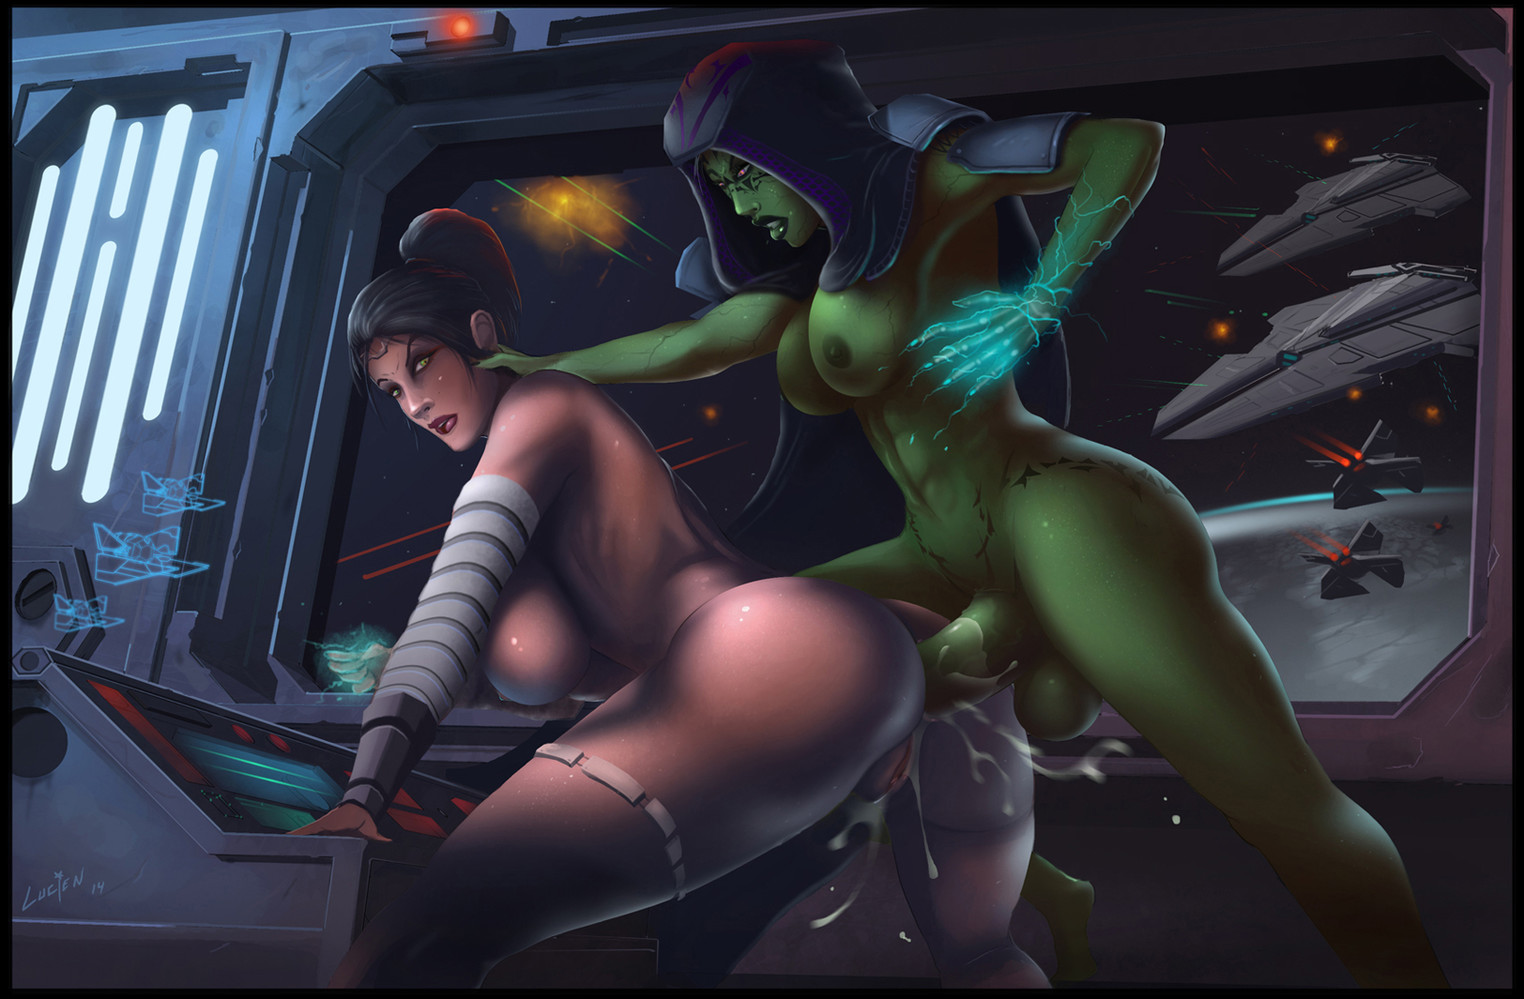 Jedi night porn video hentia girls